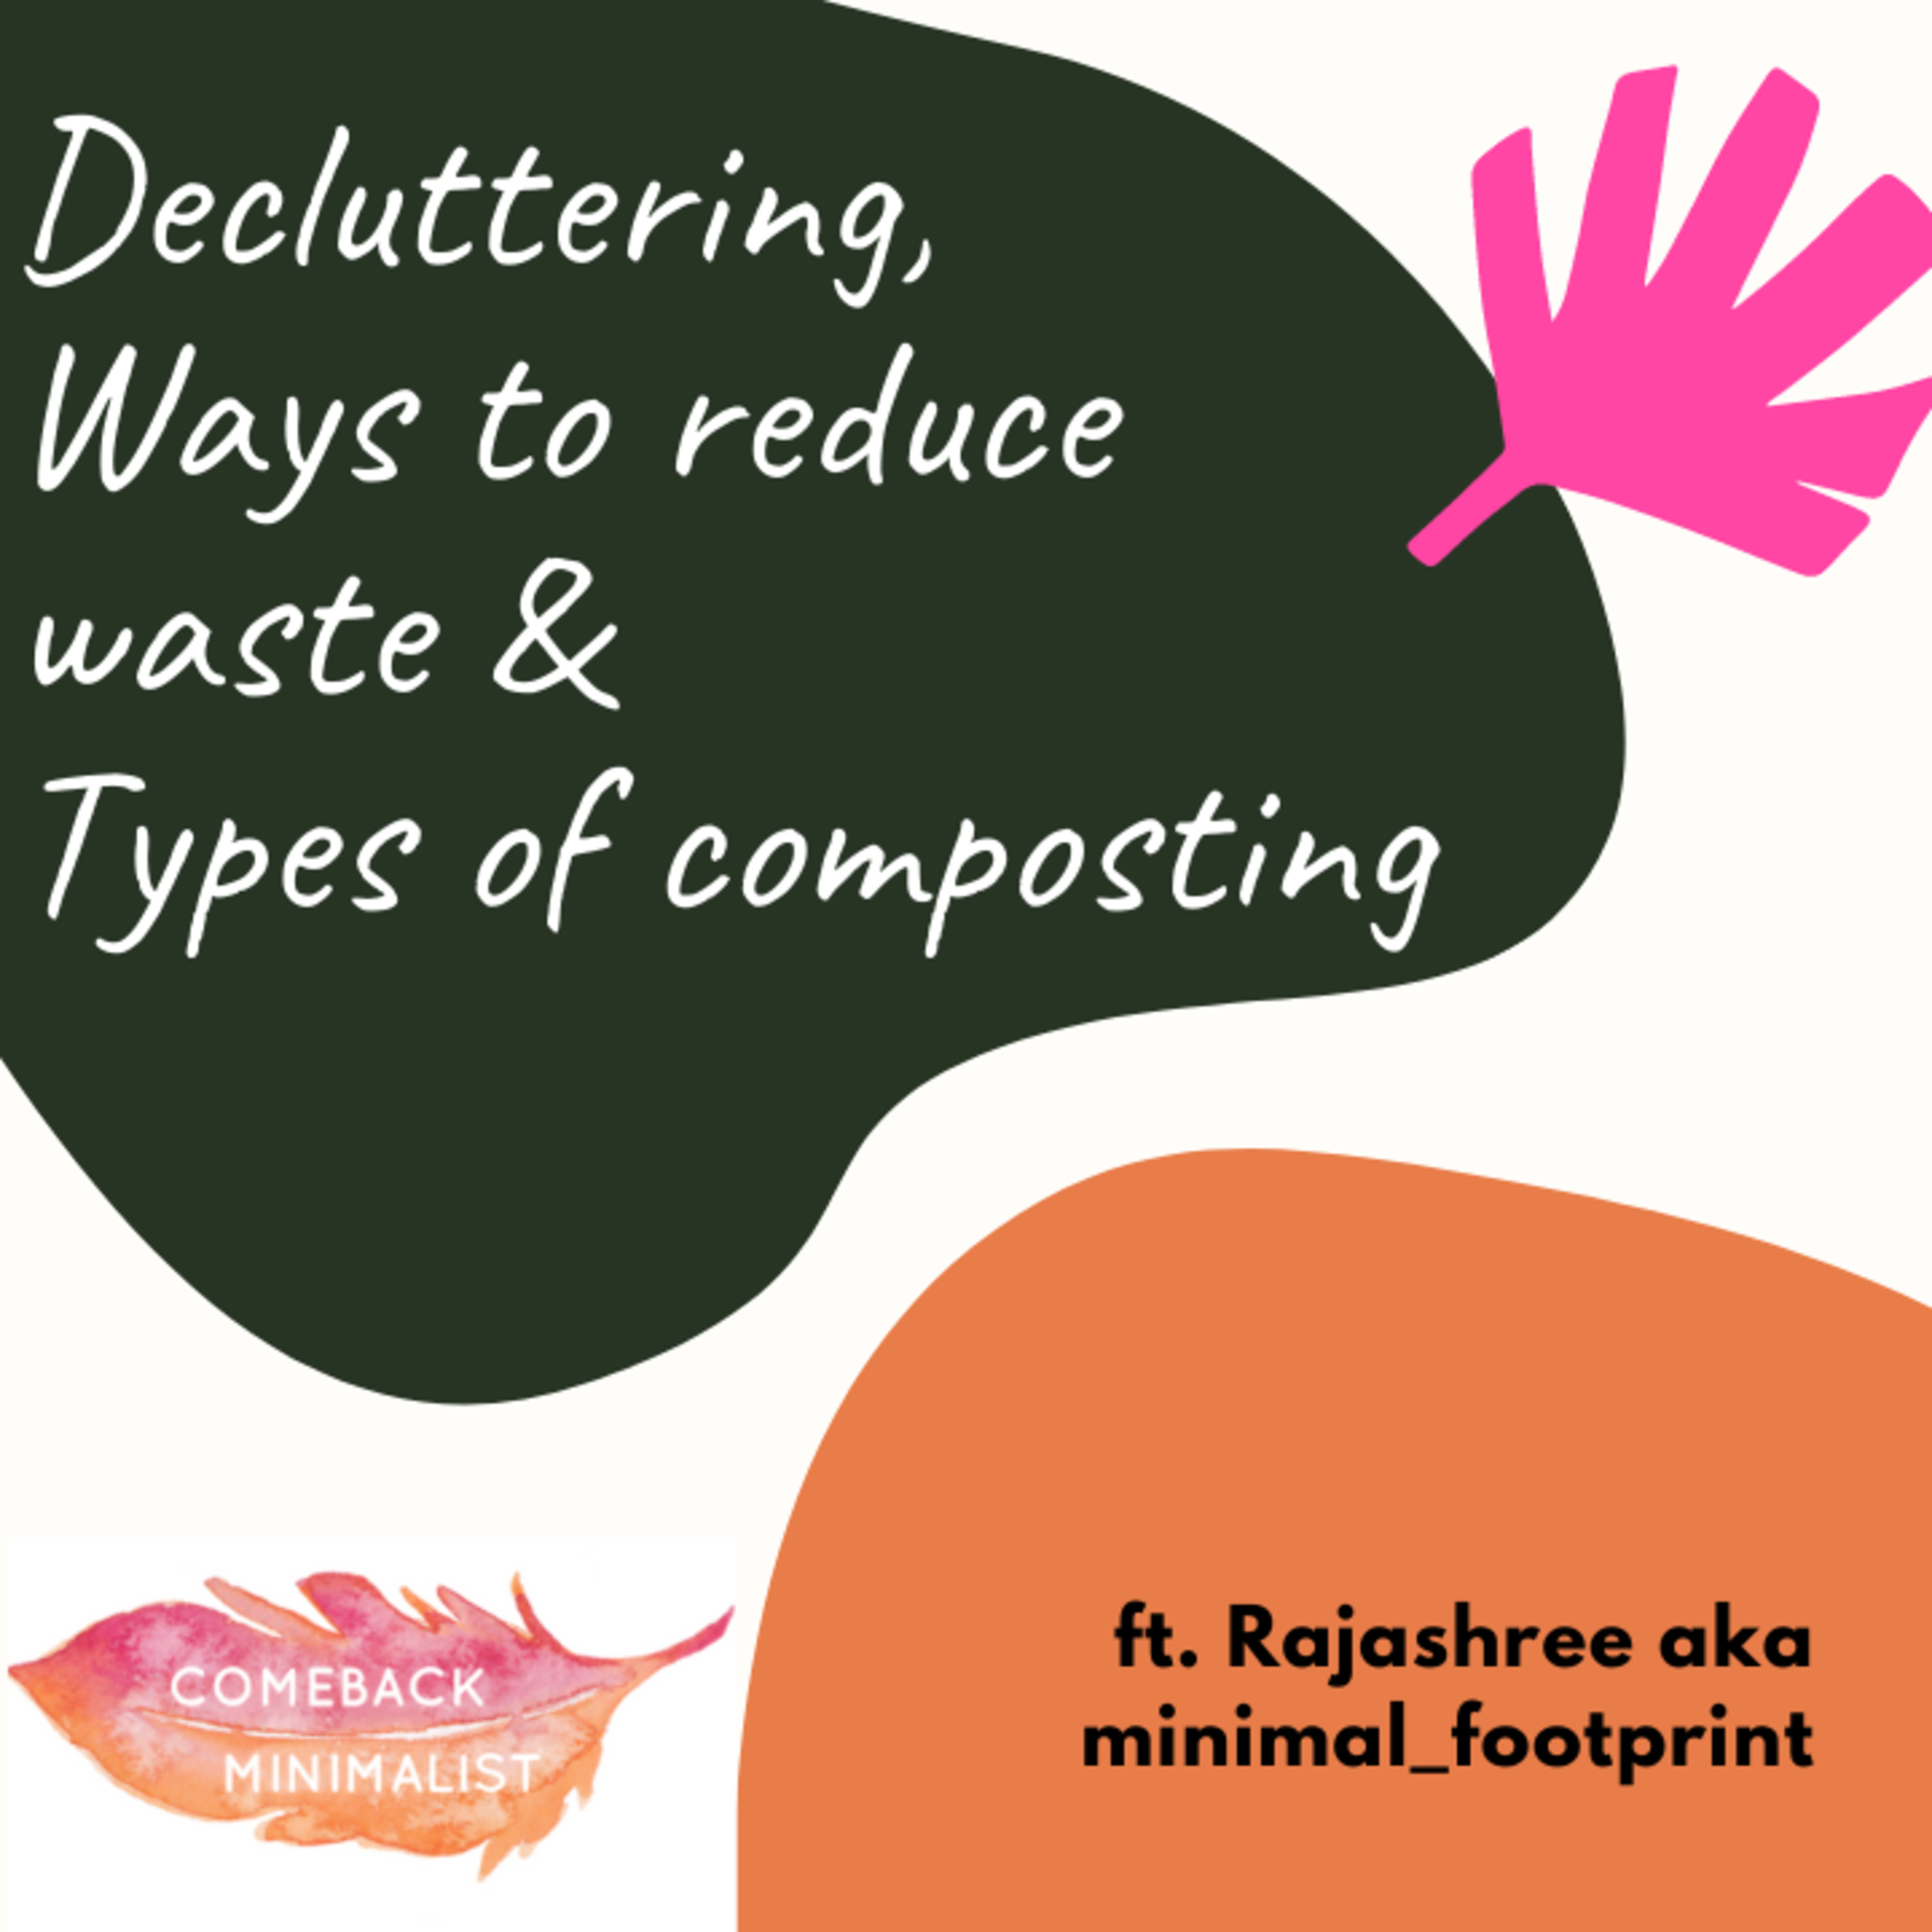 S2 E8: Decluttering, Ways to reduce waste and types of composting ft. Rajashree